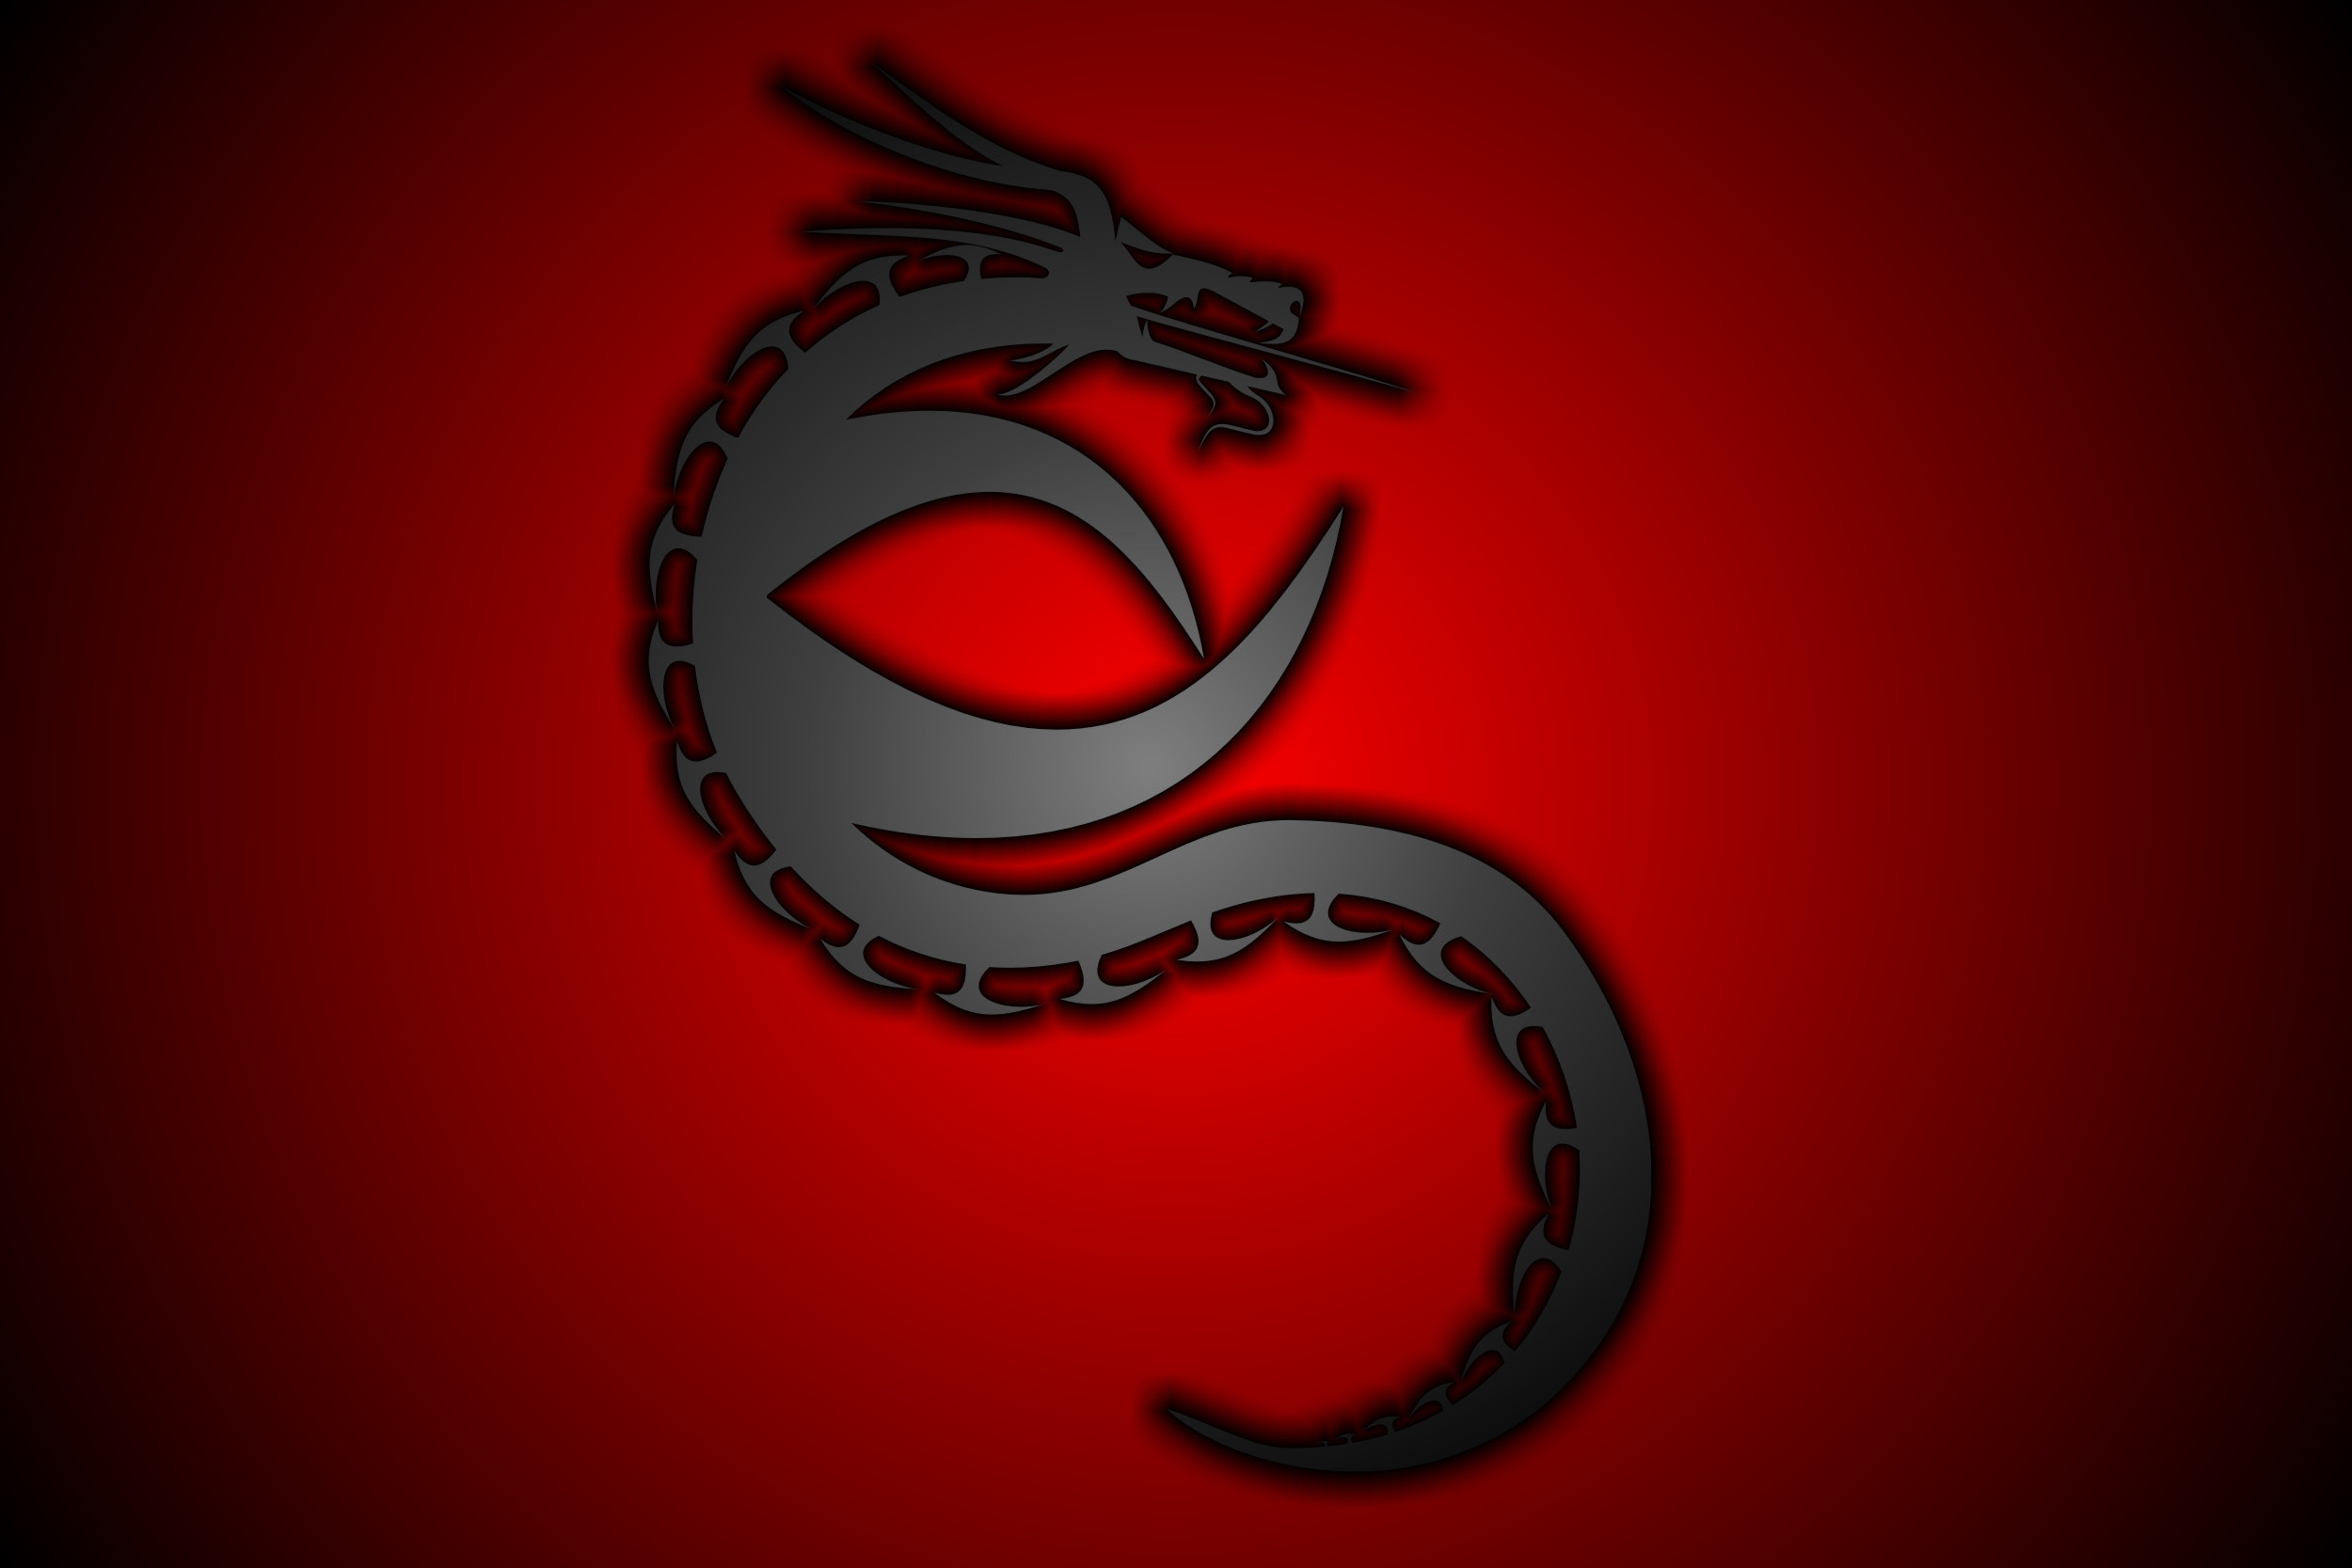 dragon wallpaper РGoogle keres̩s | Phone | Pinterest | Red dragon and  Dragons